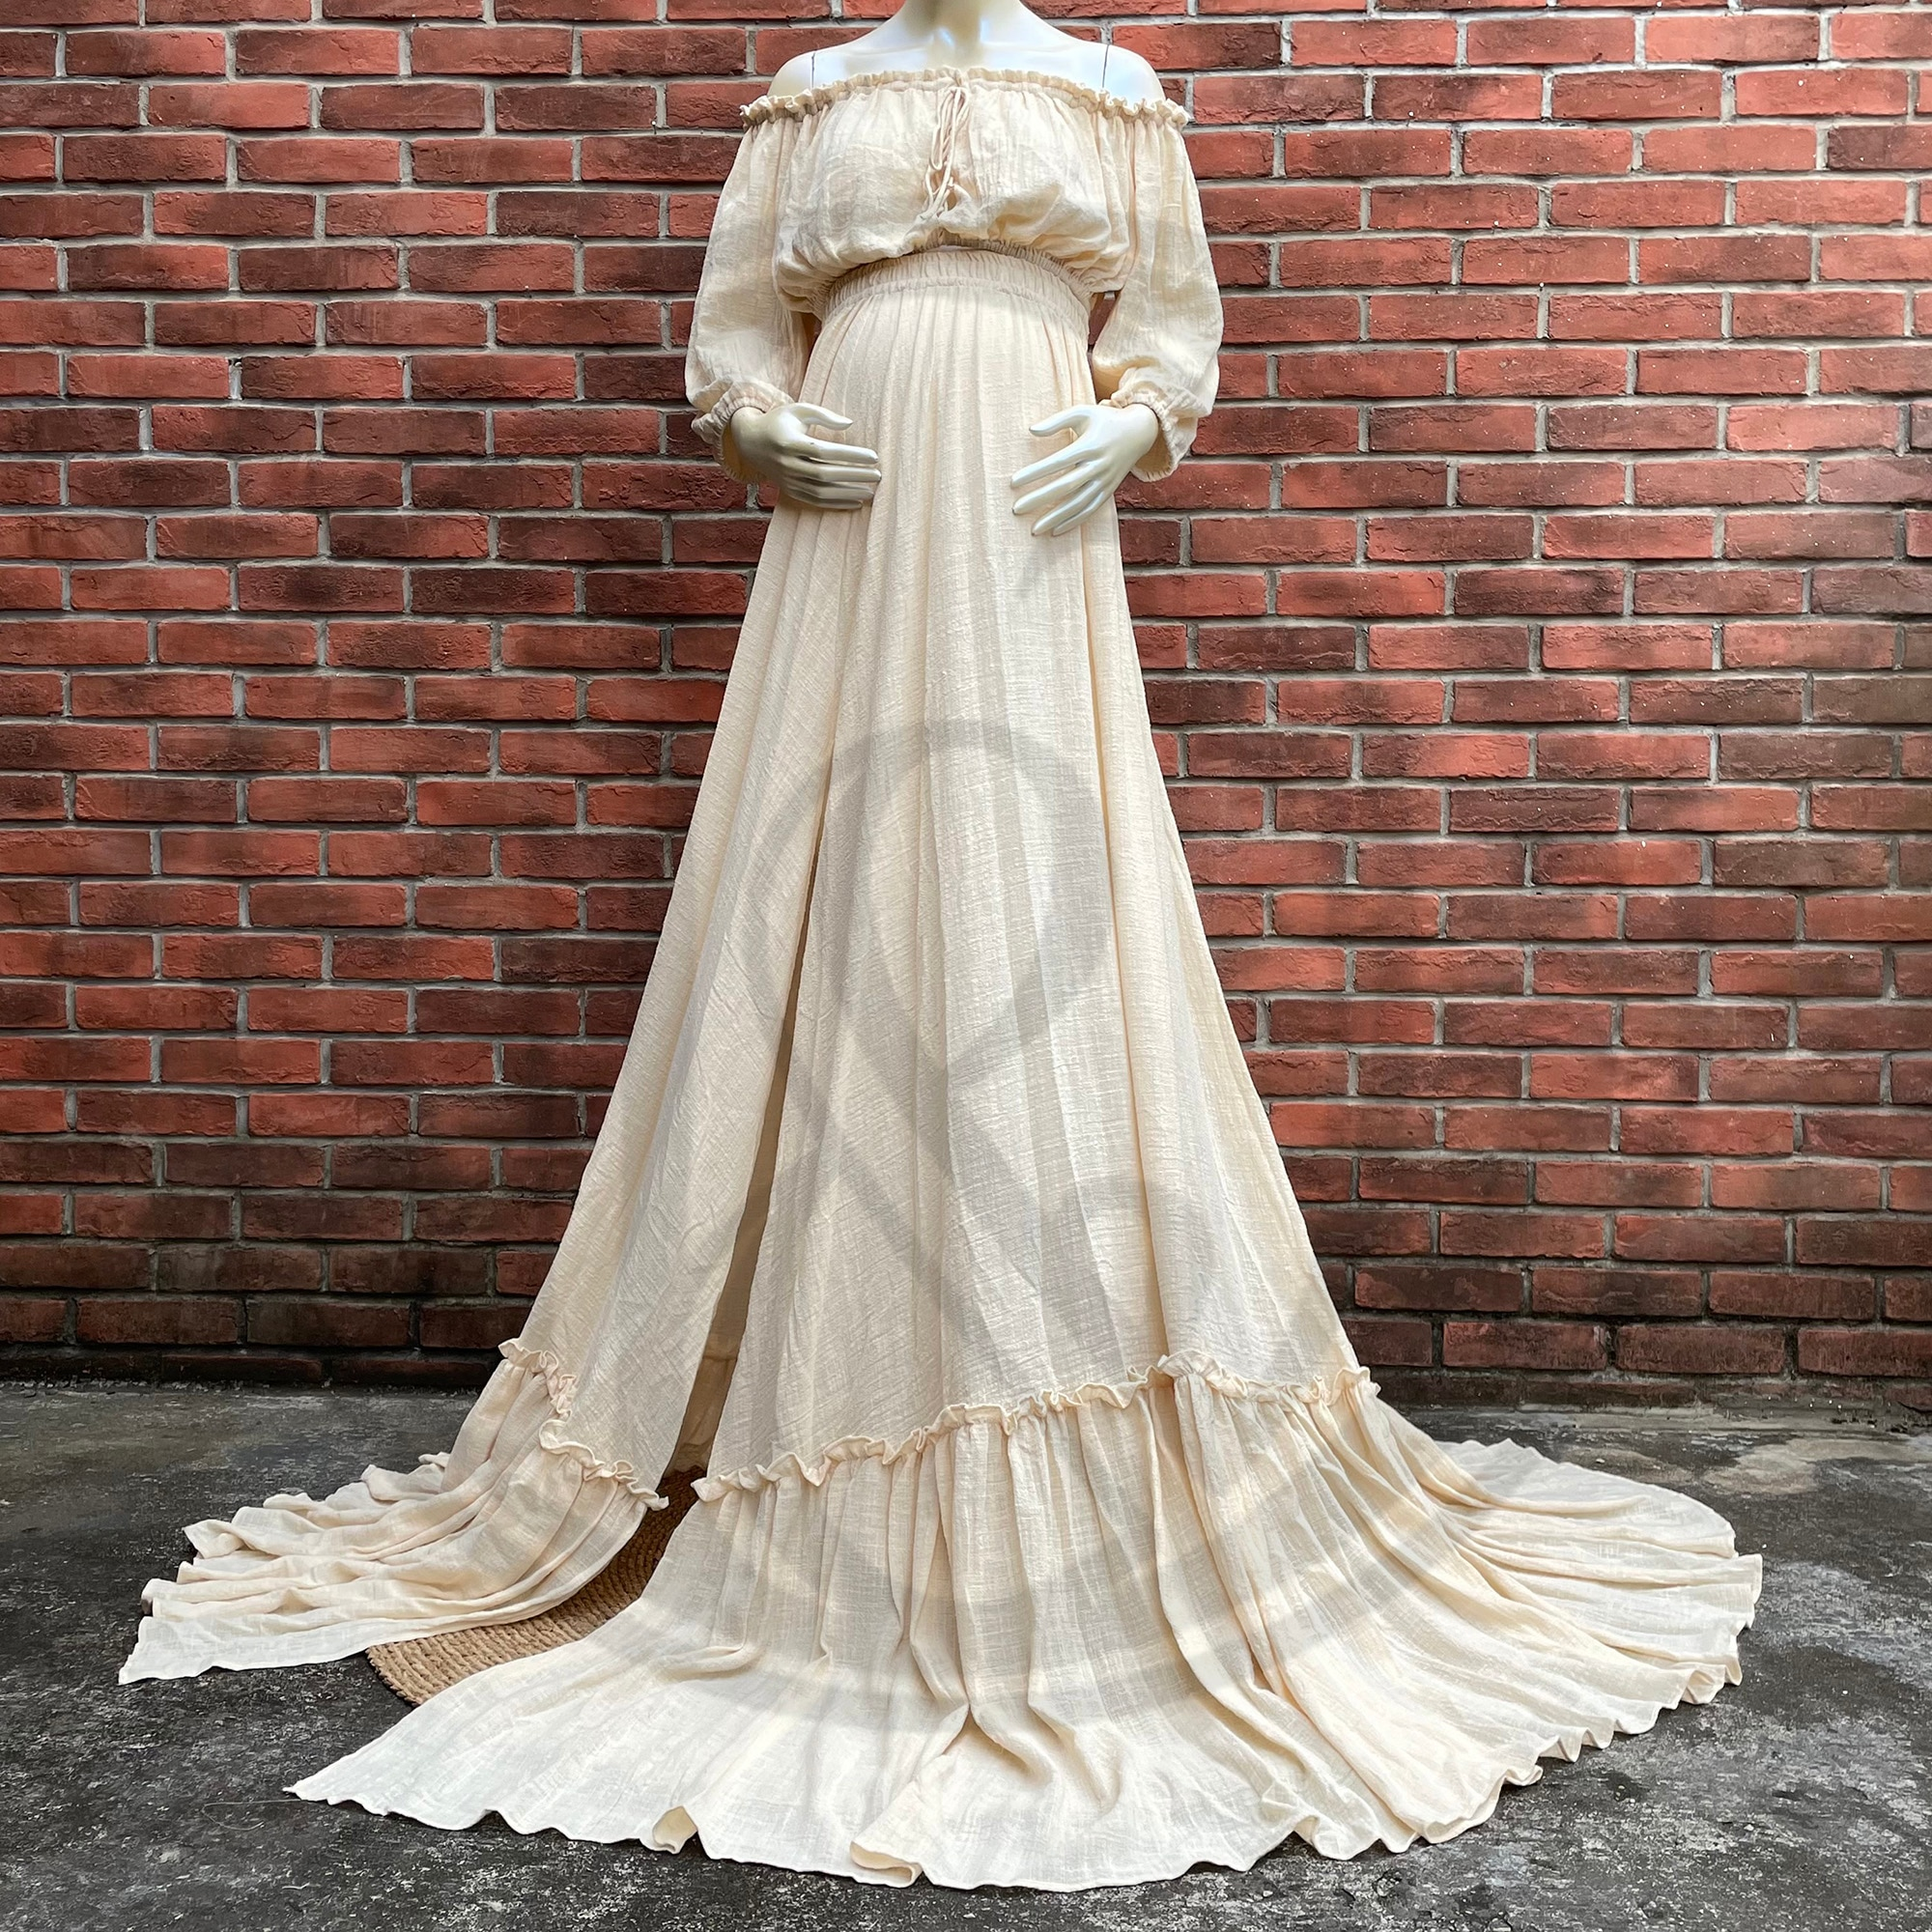 Photo Shoot Props A Suit Cotton Kaftan Full Sleeves Robe Maternity Dress Evening Party Costume for Women Photography Accessories enlarge